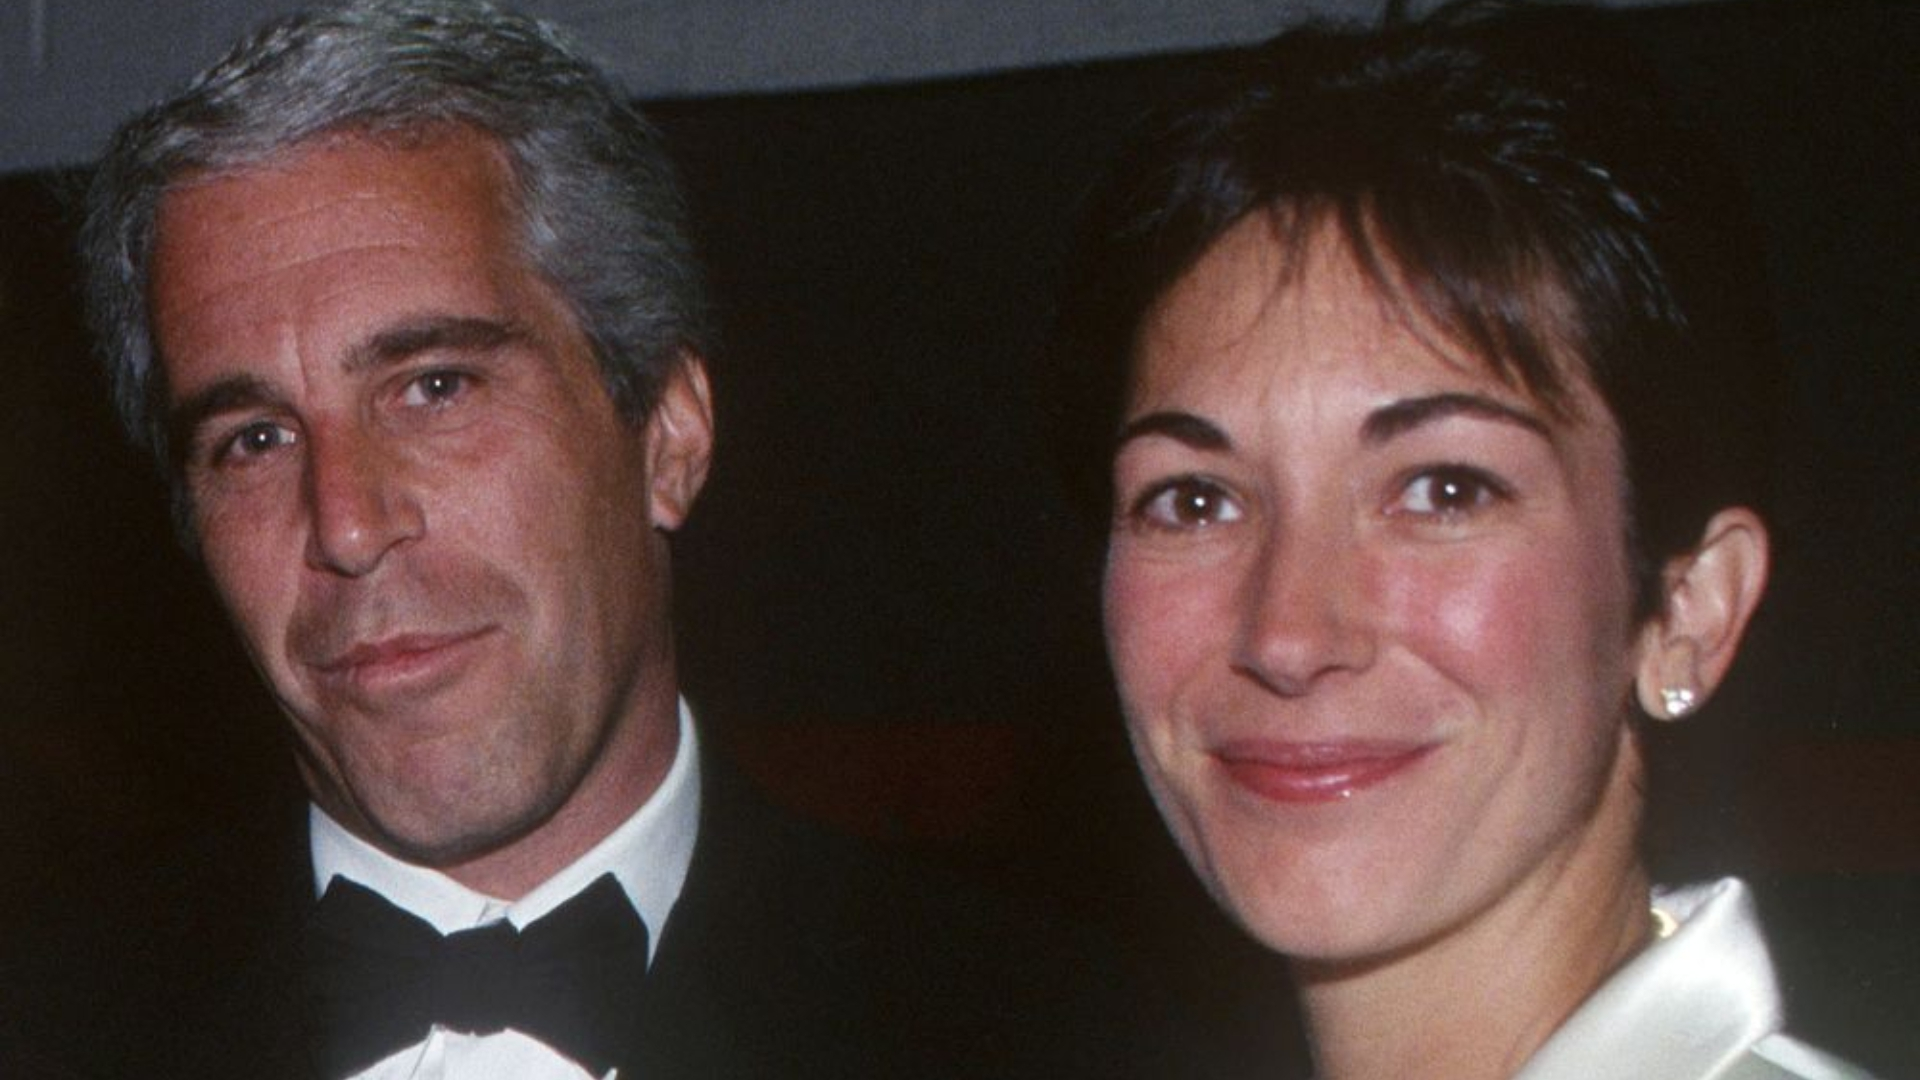 Jeffrey Epstein Confidante Ghislaine Maxwell Arrested on Sex Abuse Charges